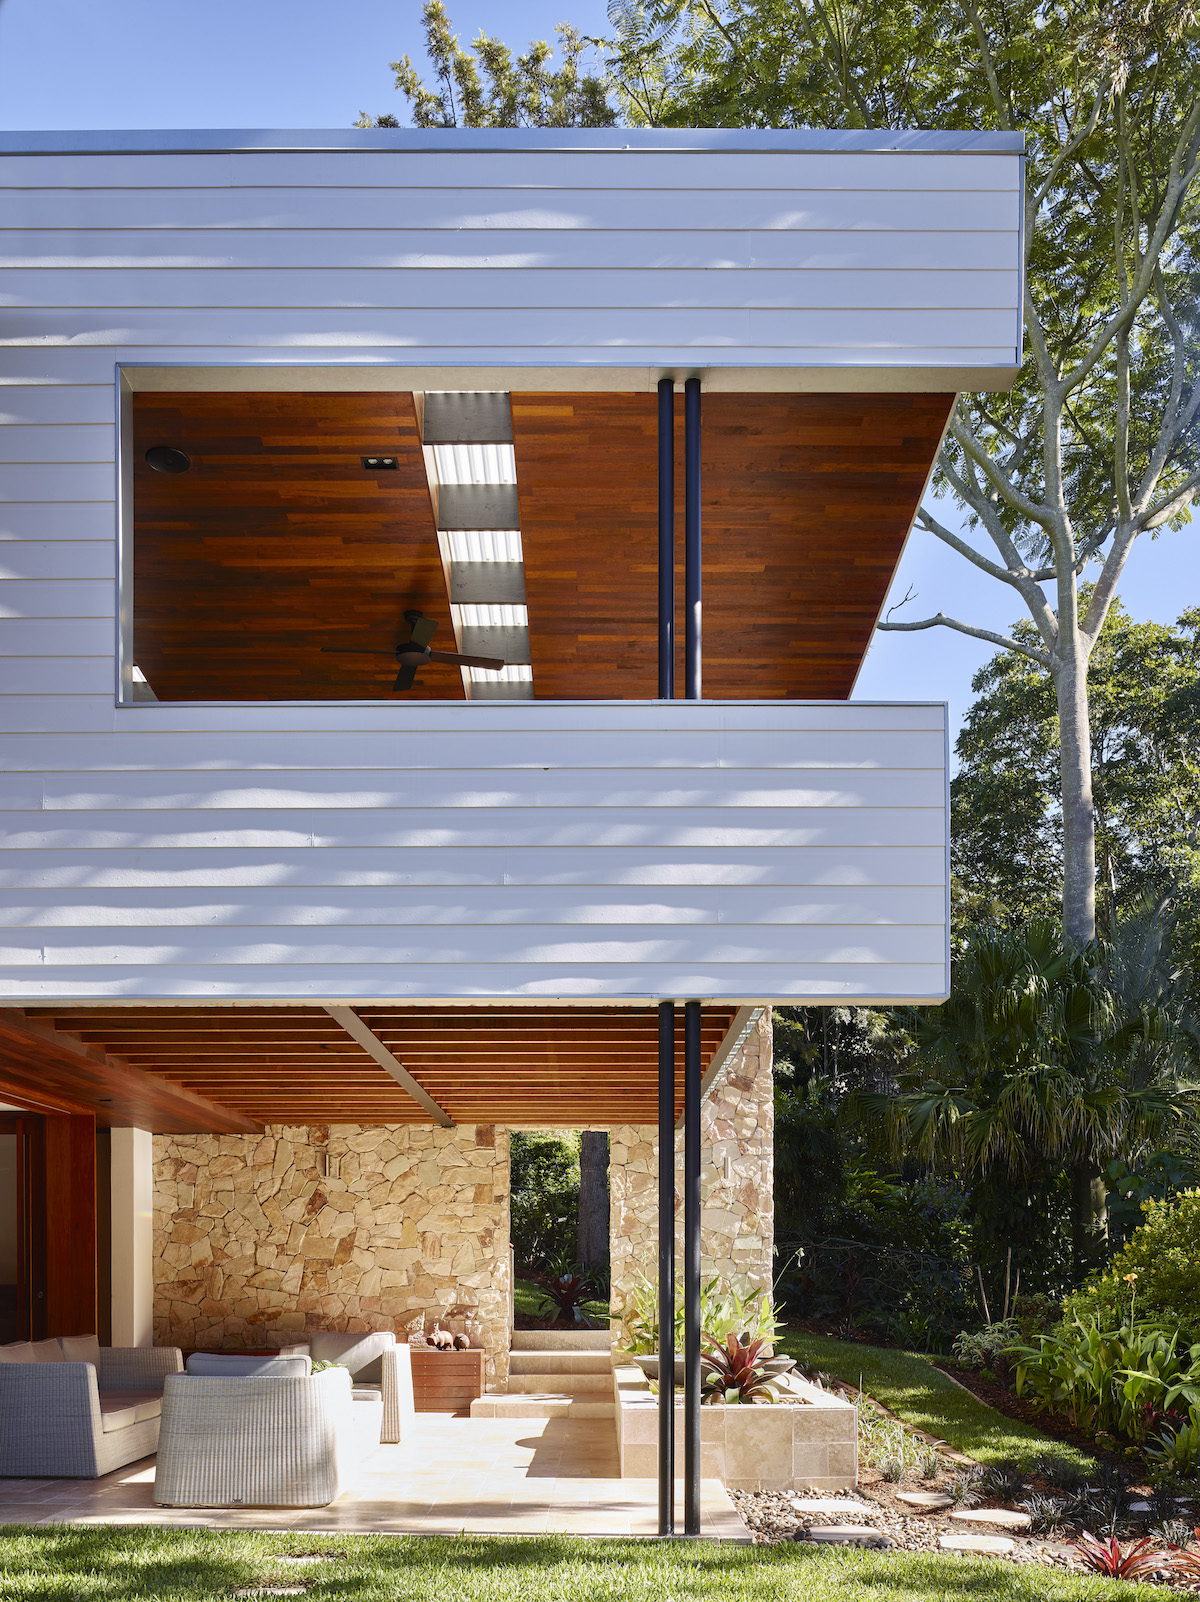 KenmoreHills House designed by Shaun Lockyer Architect built by Graya Constructions